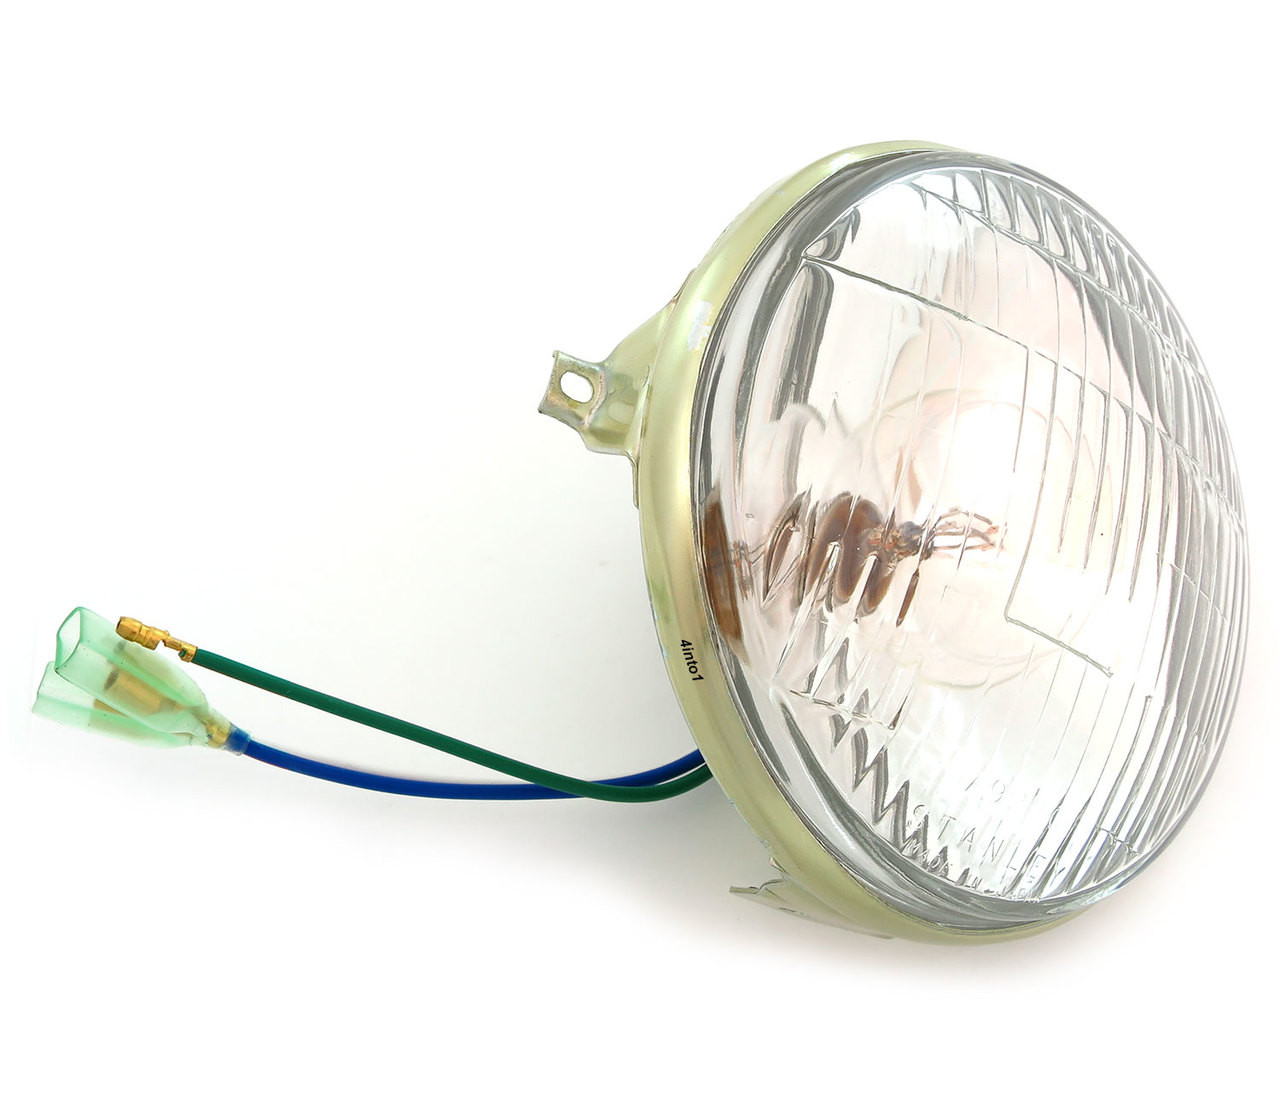 medium resolution of genuine honda 6v sealed beam headlight 33120 243 672 ct1967 honda s90 wiring headlight 10